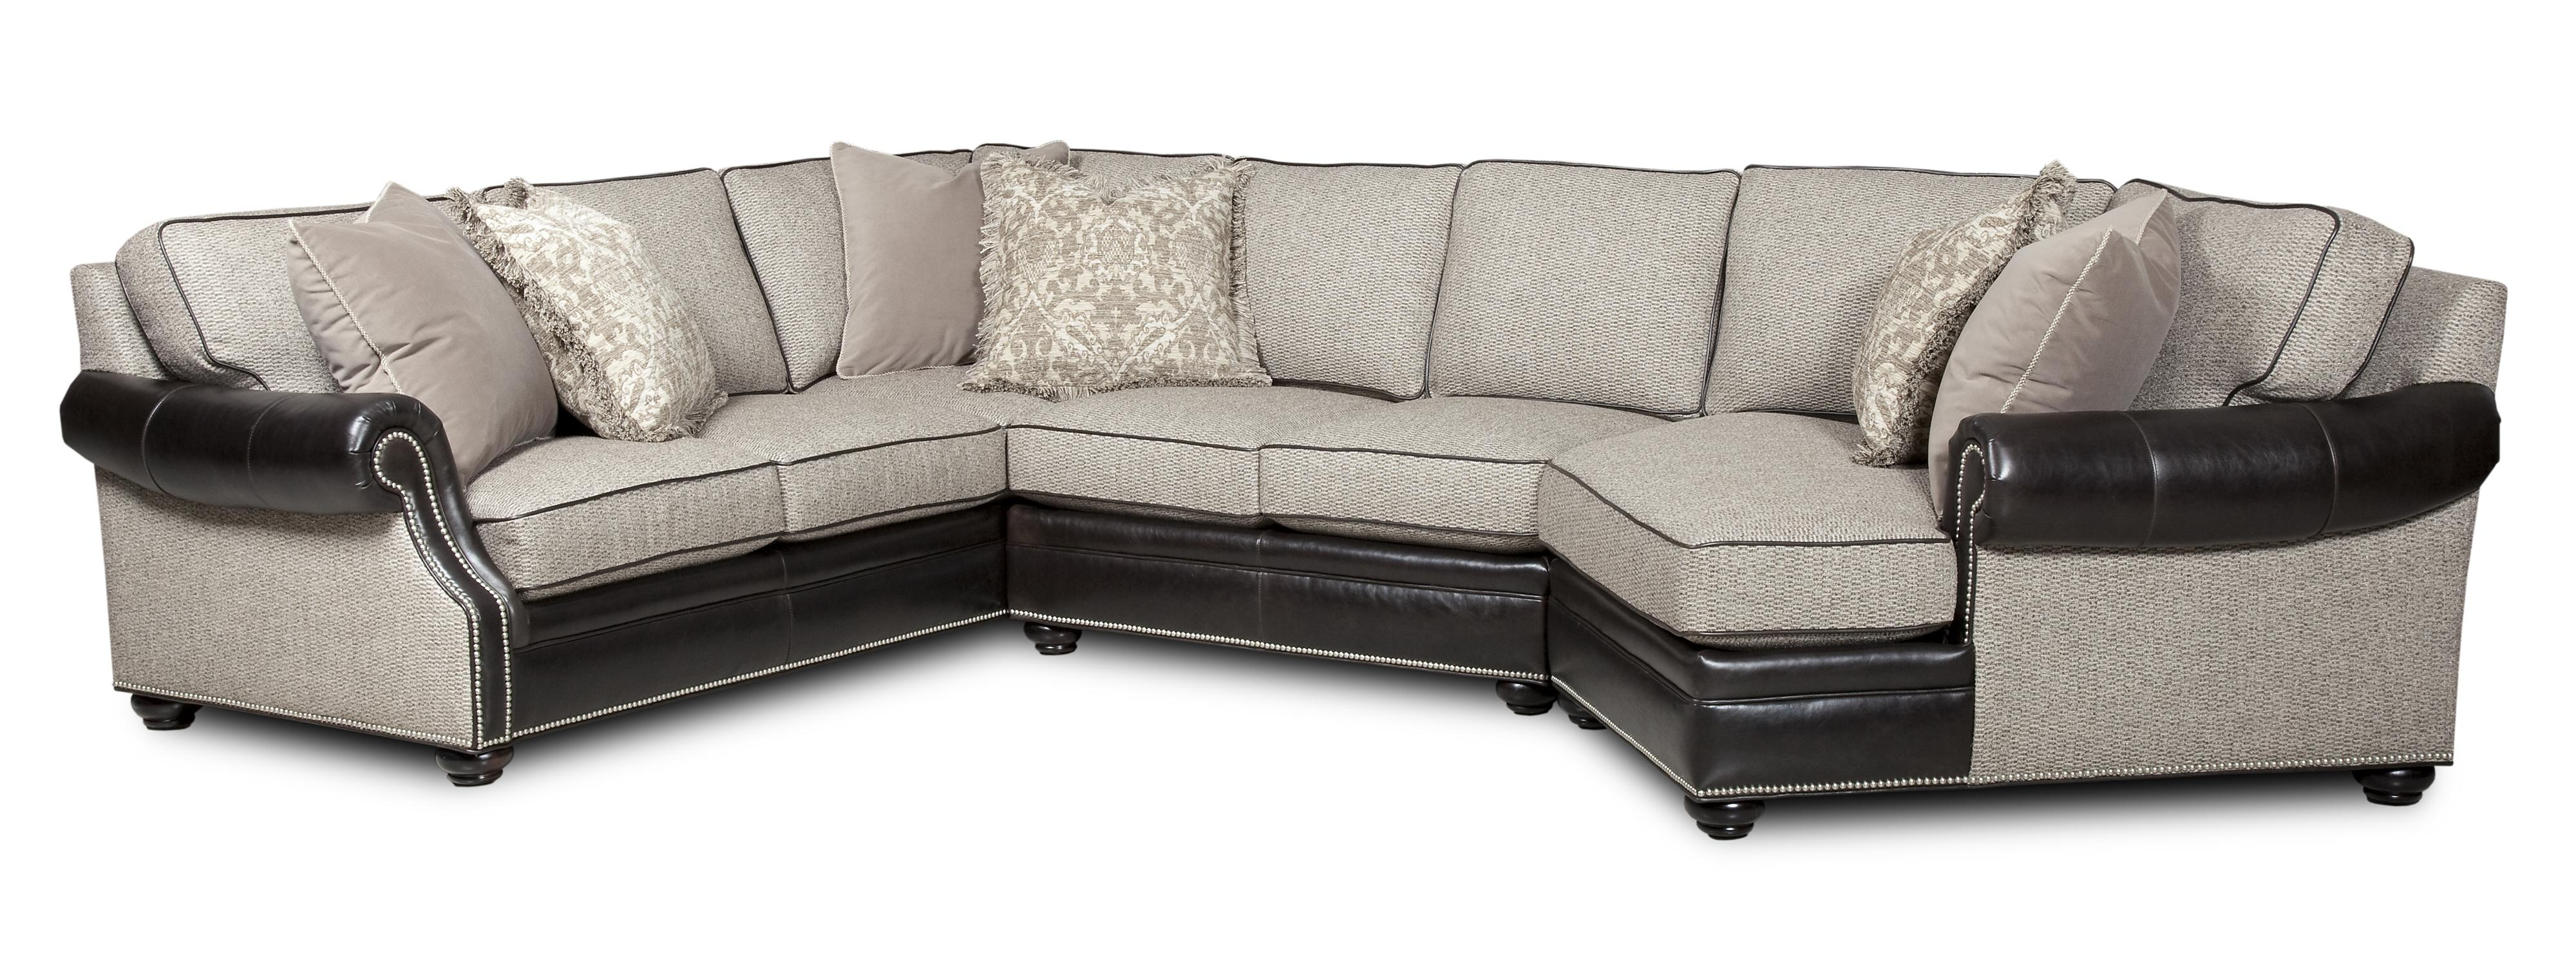 Most Popular Bradington Young Warner Three Piece Sectional Sofa With Laf Regarding Visalia Ca Sectional Sofas (View 8 of 15)